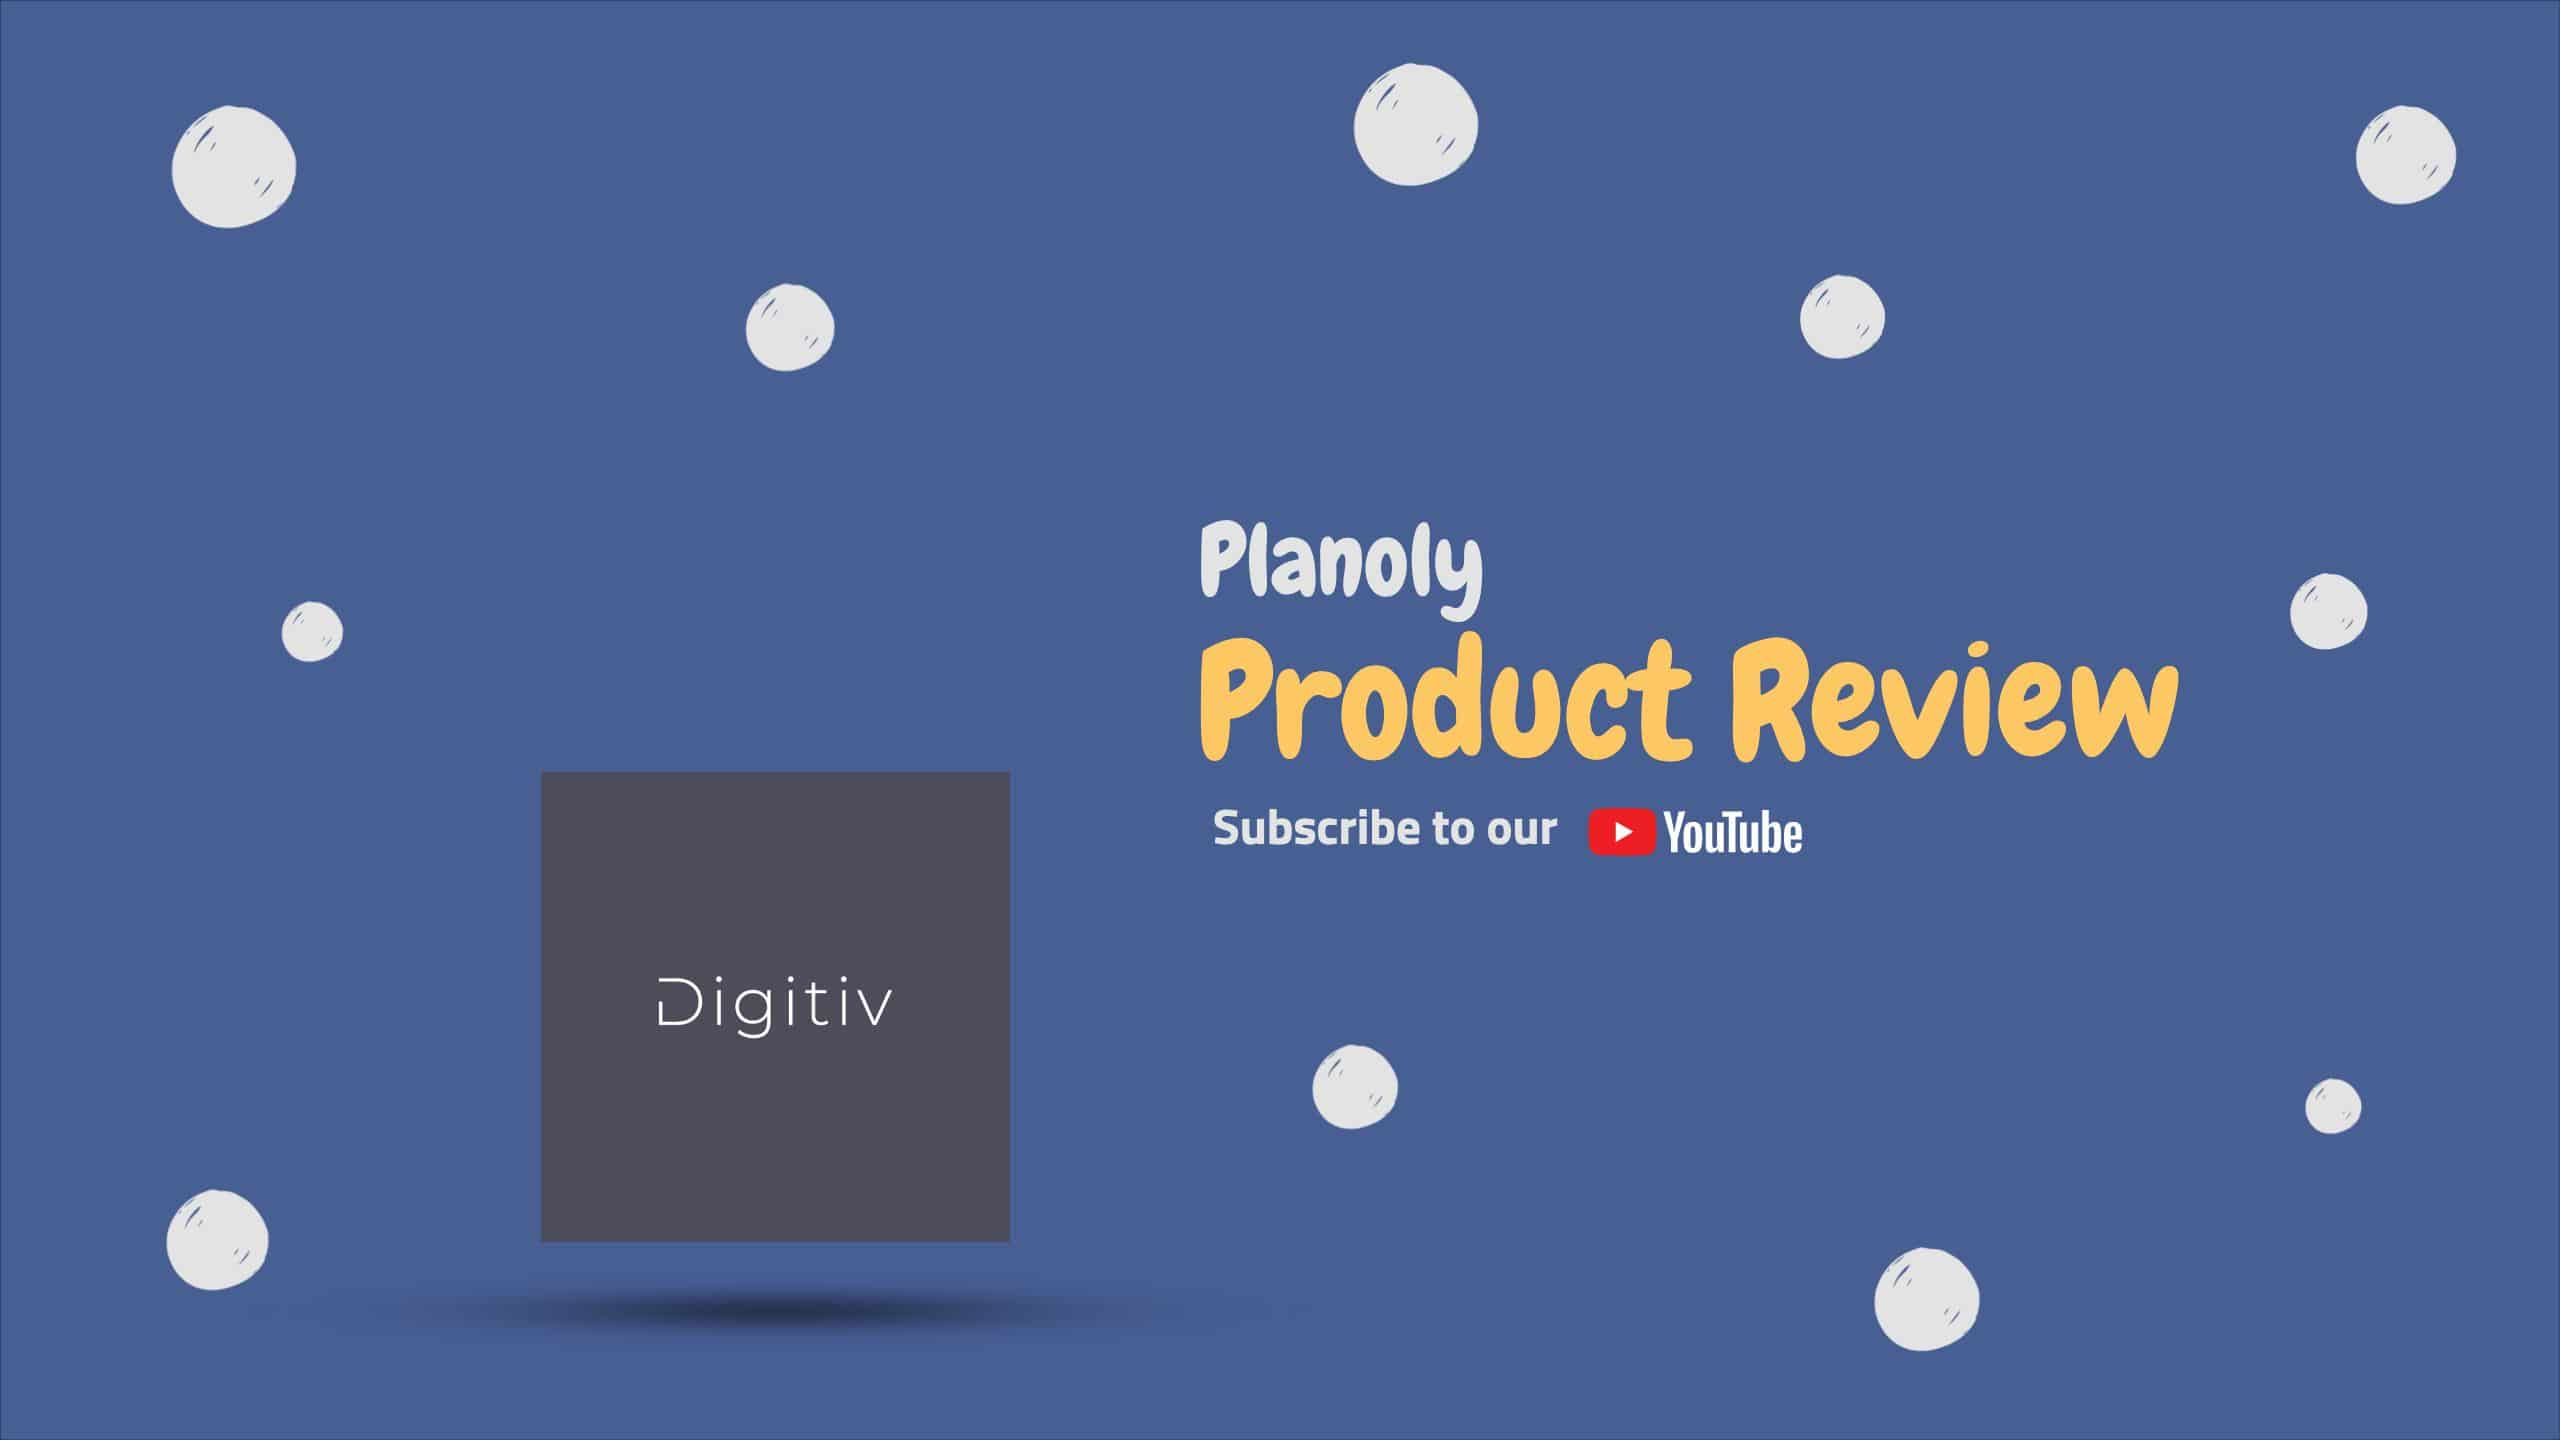 Planoly Product Review